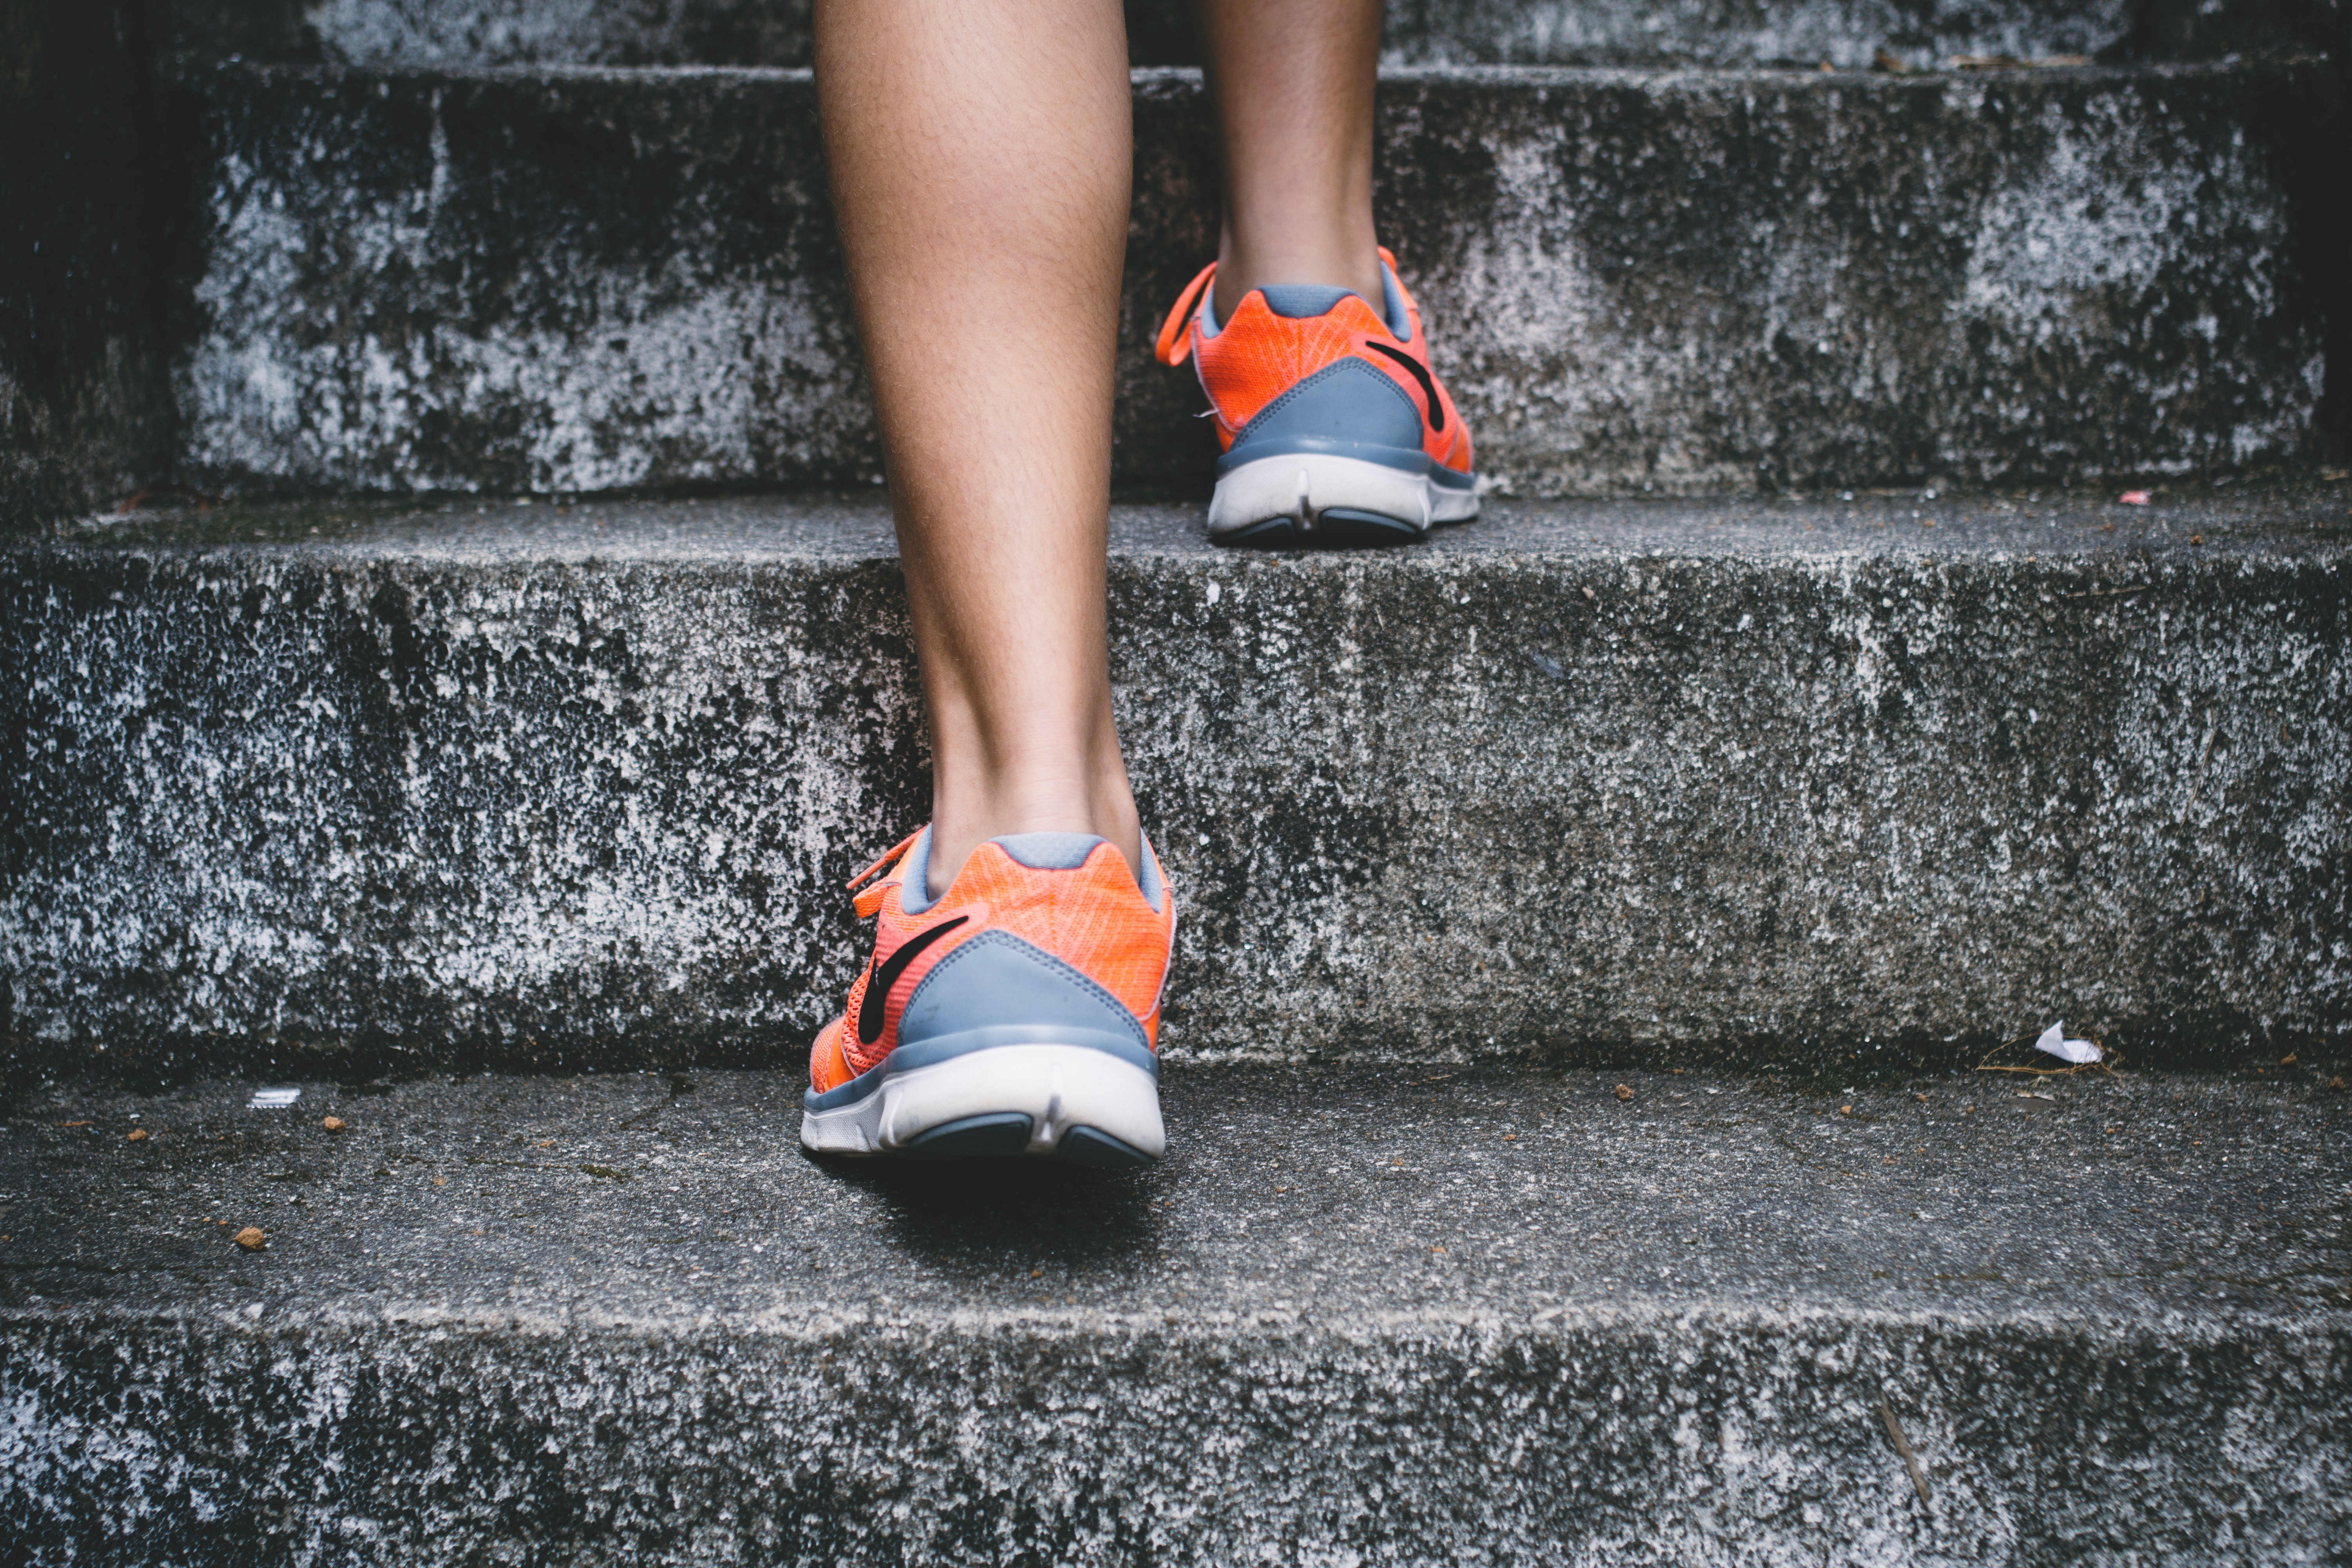 5 BABY STEPS FOR AN ACTIVE LIFESTYL